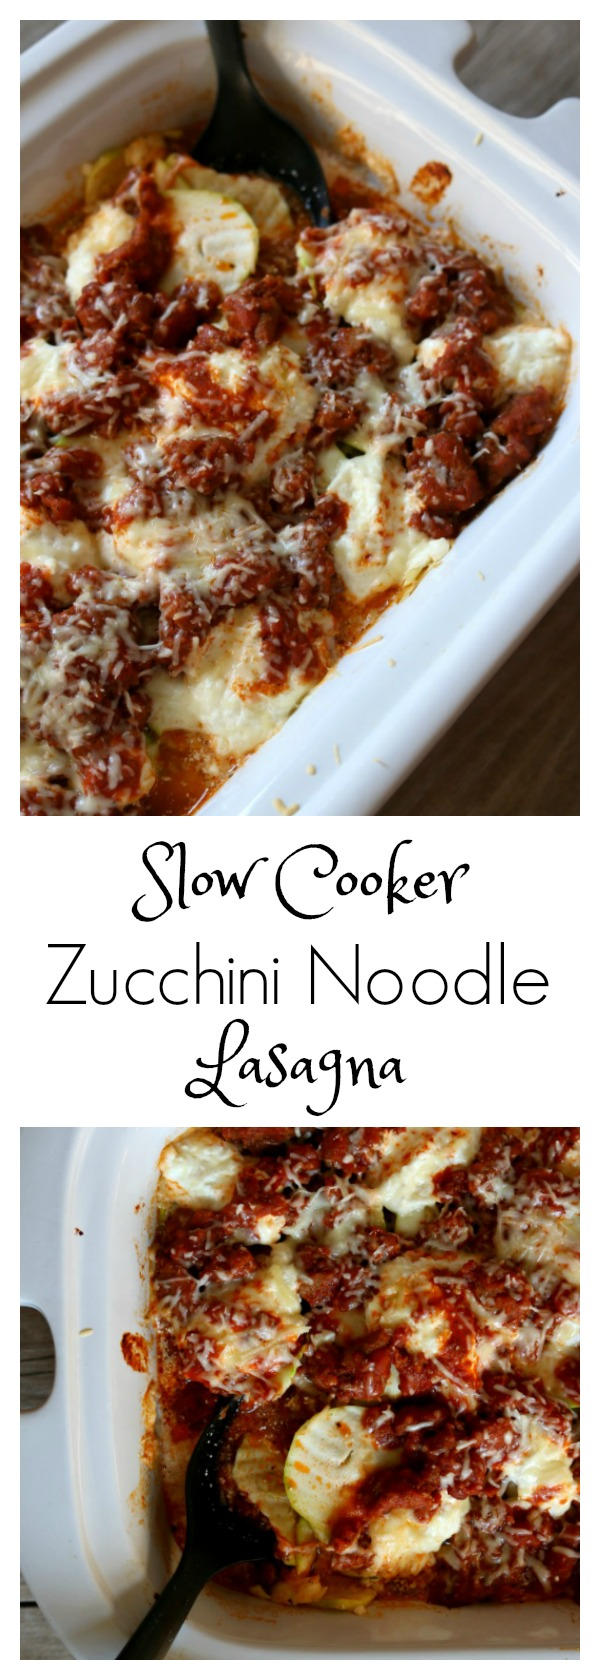 Slow Cooker Zucchini Noodle Lasagna: an easy recipe for a red sauce lasagna with gooey cheese, spicy sausage and sliced zucchini that is used for the noodles all made in your crockpot!